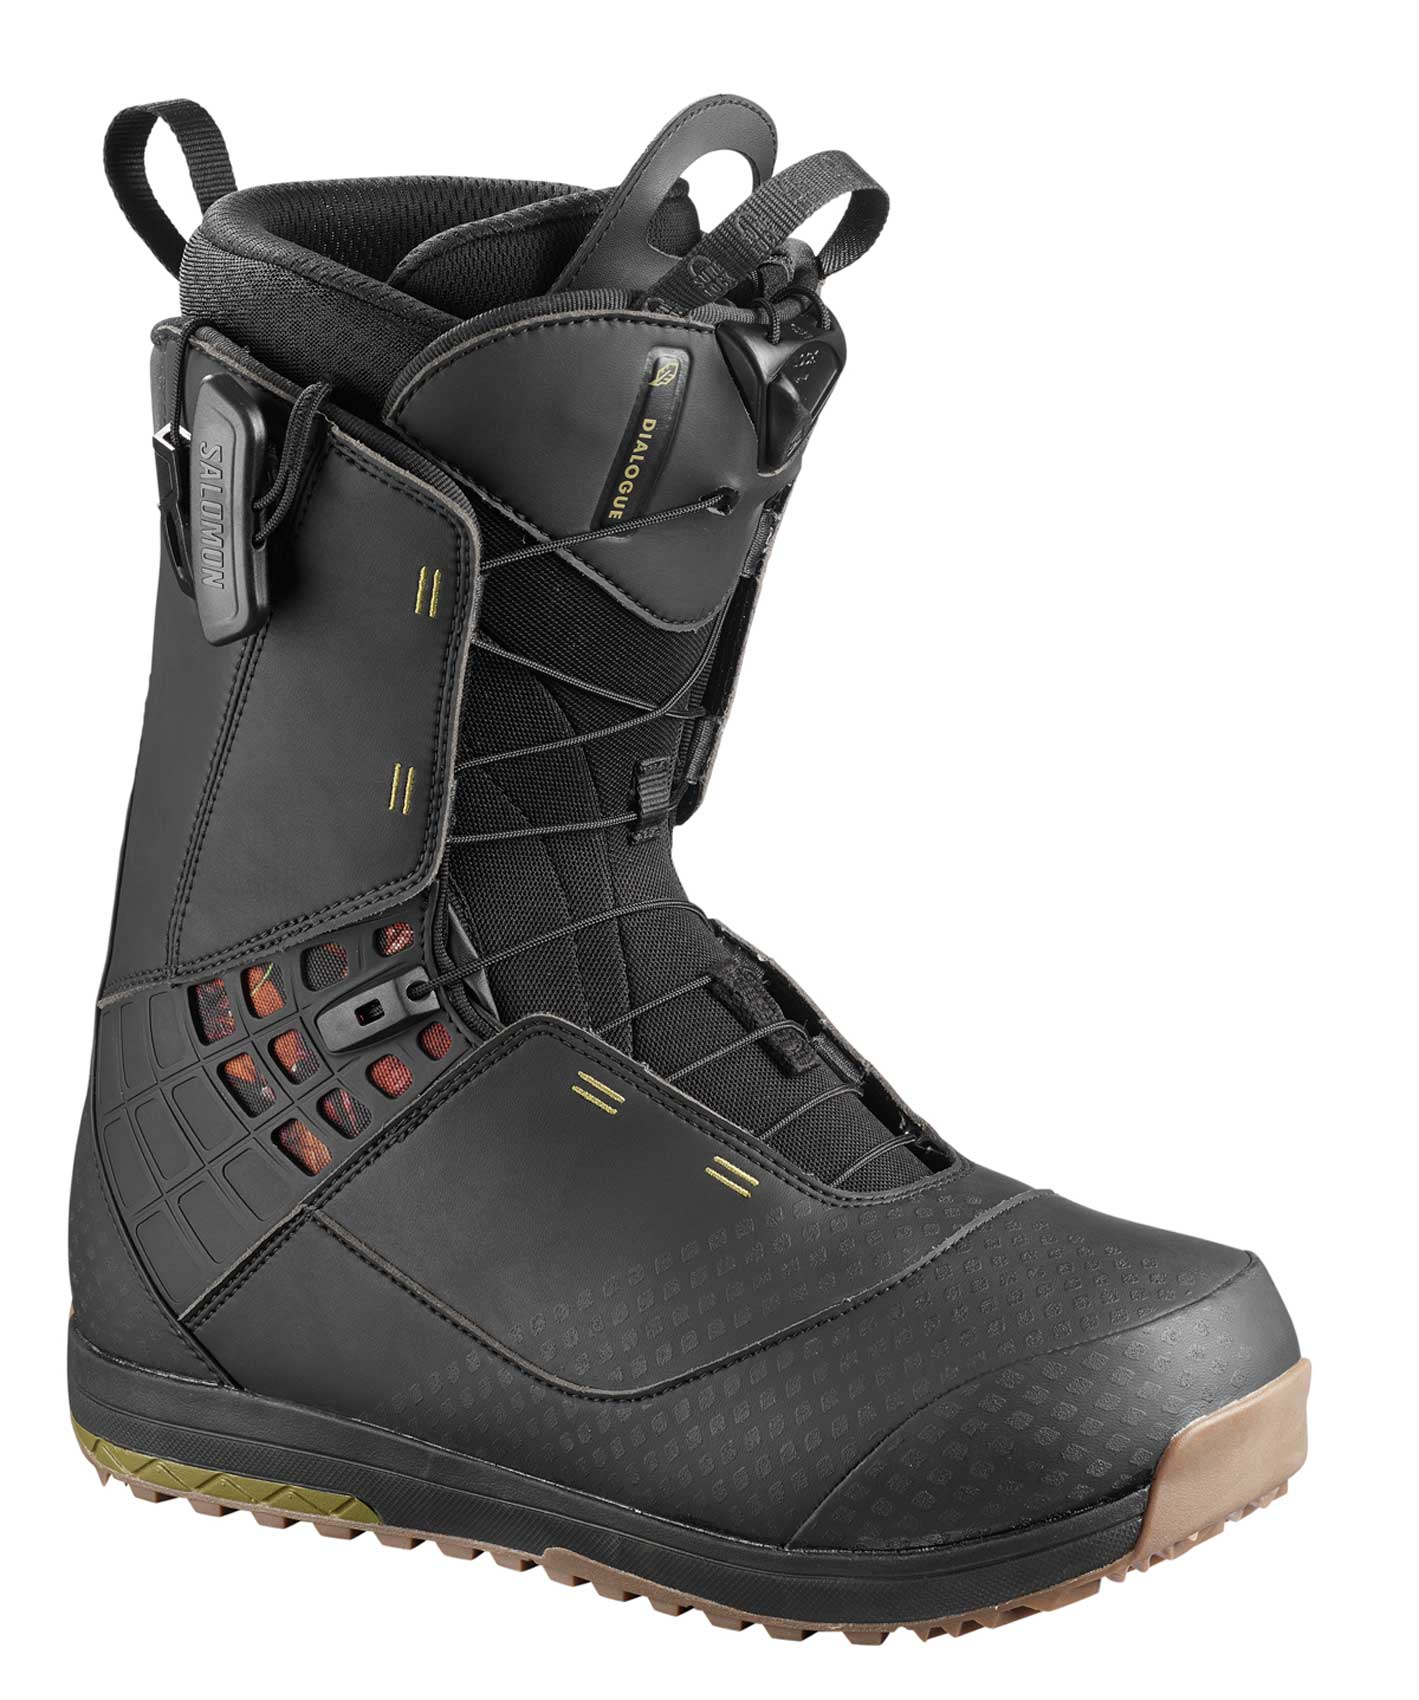 Salomon Dialogue Snowboard Boots UK 10 review